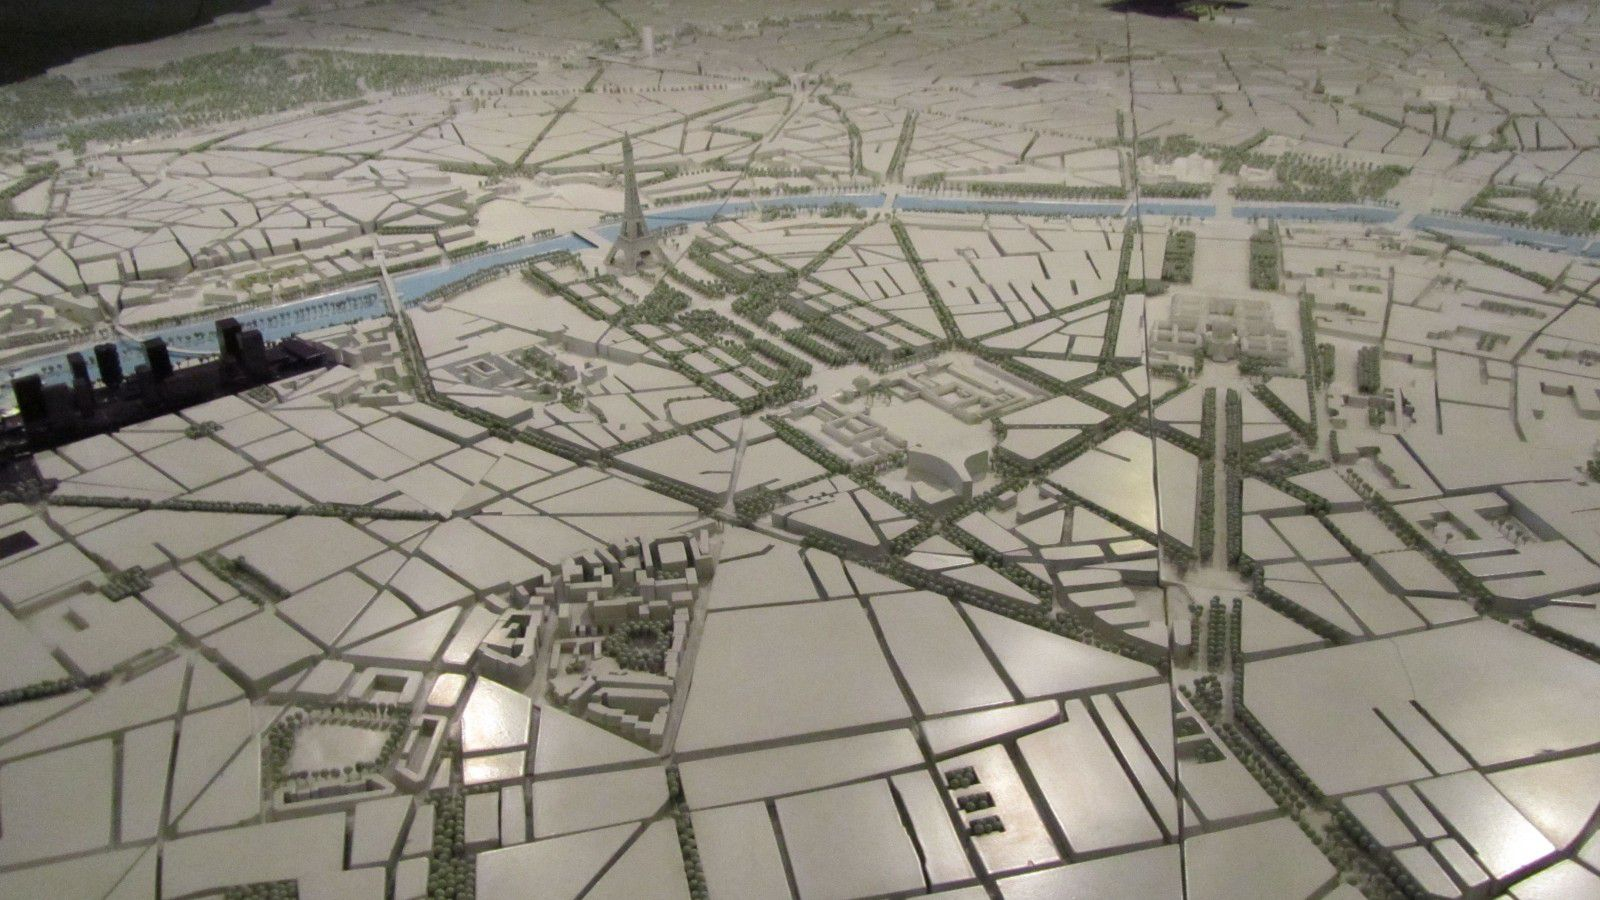 http://idata.over-blog.com/0/32/10/53/villes-geo-urbaine/maquette-Paris.jpg